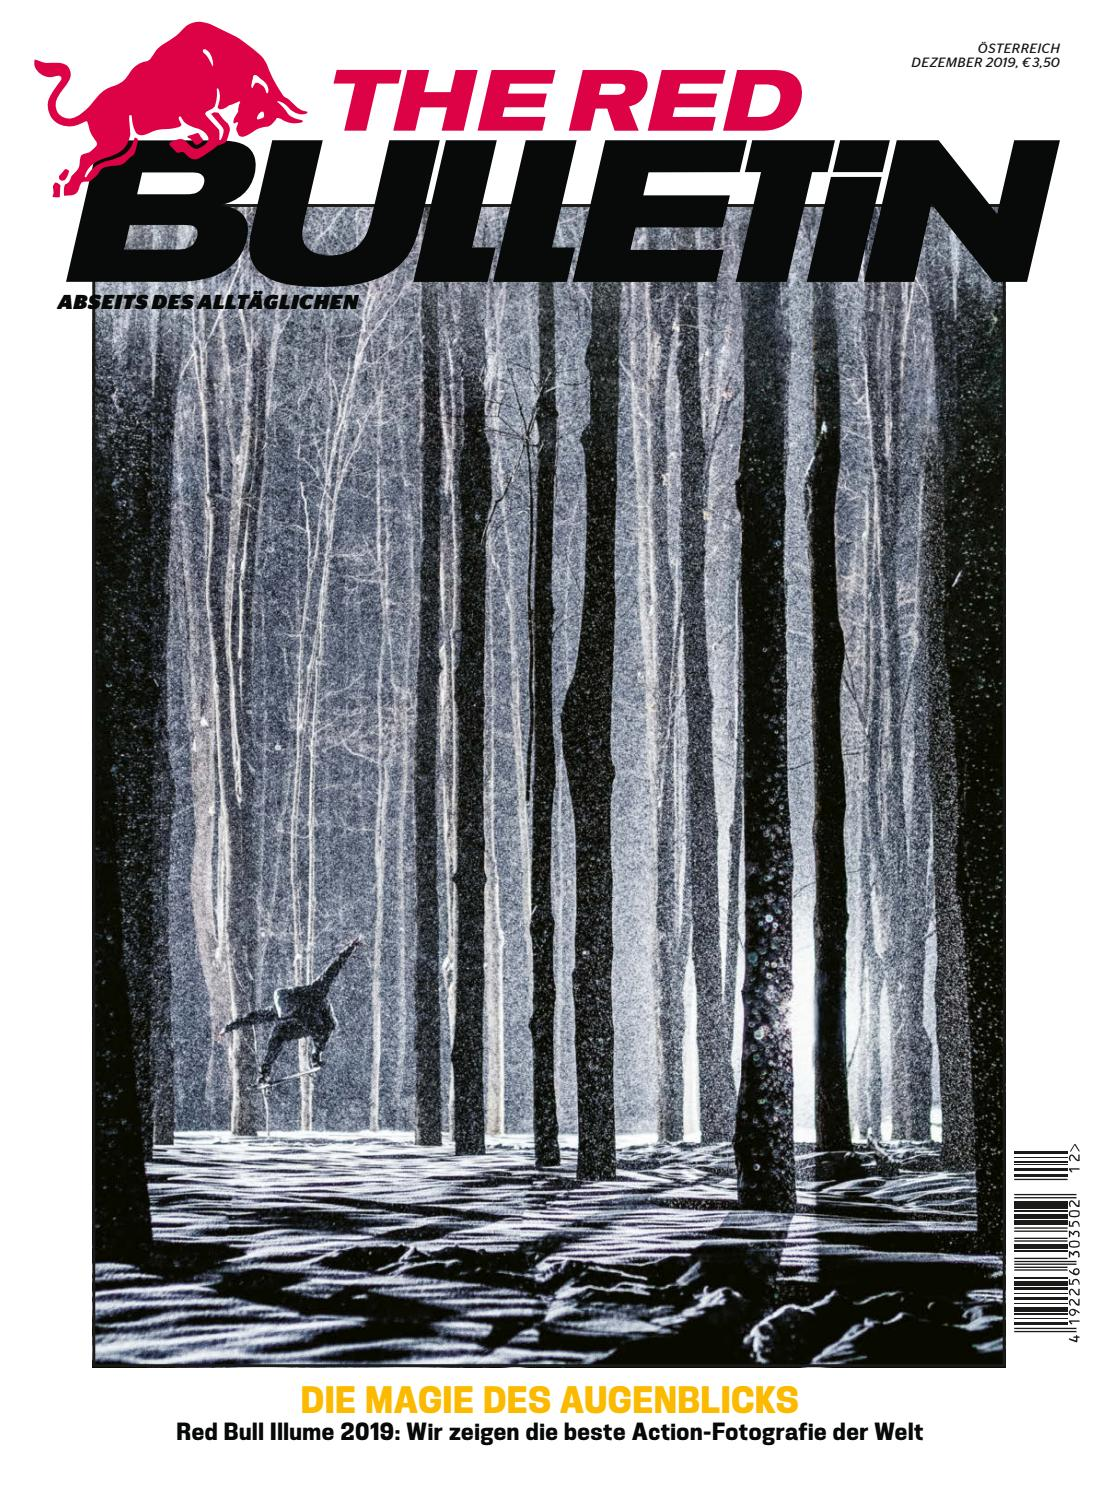 The Red Bulletin At 12 19 By Red Bull Media House Issuu